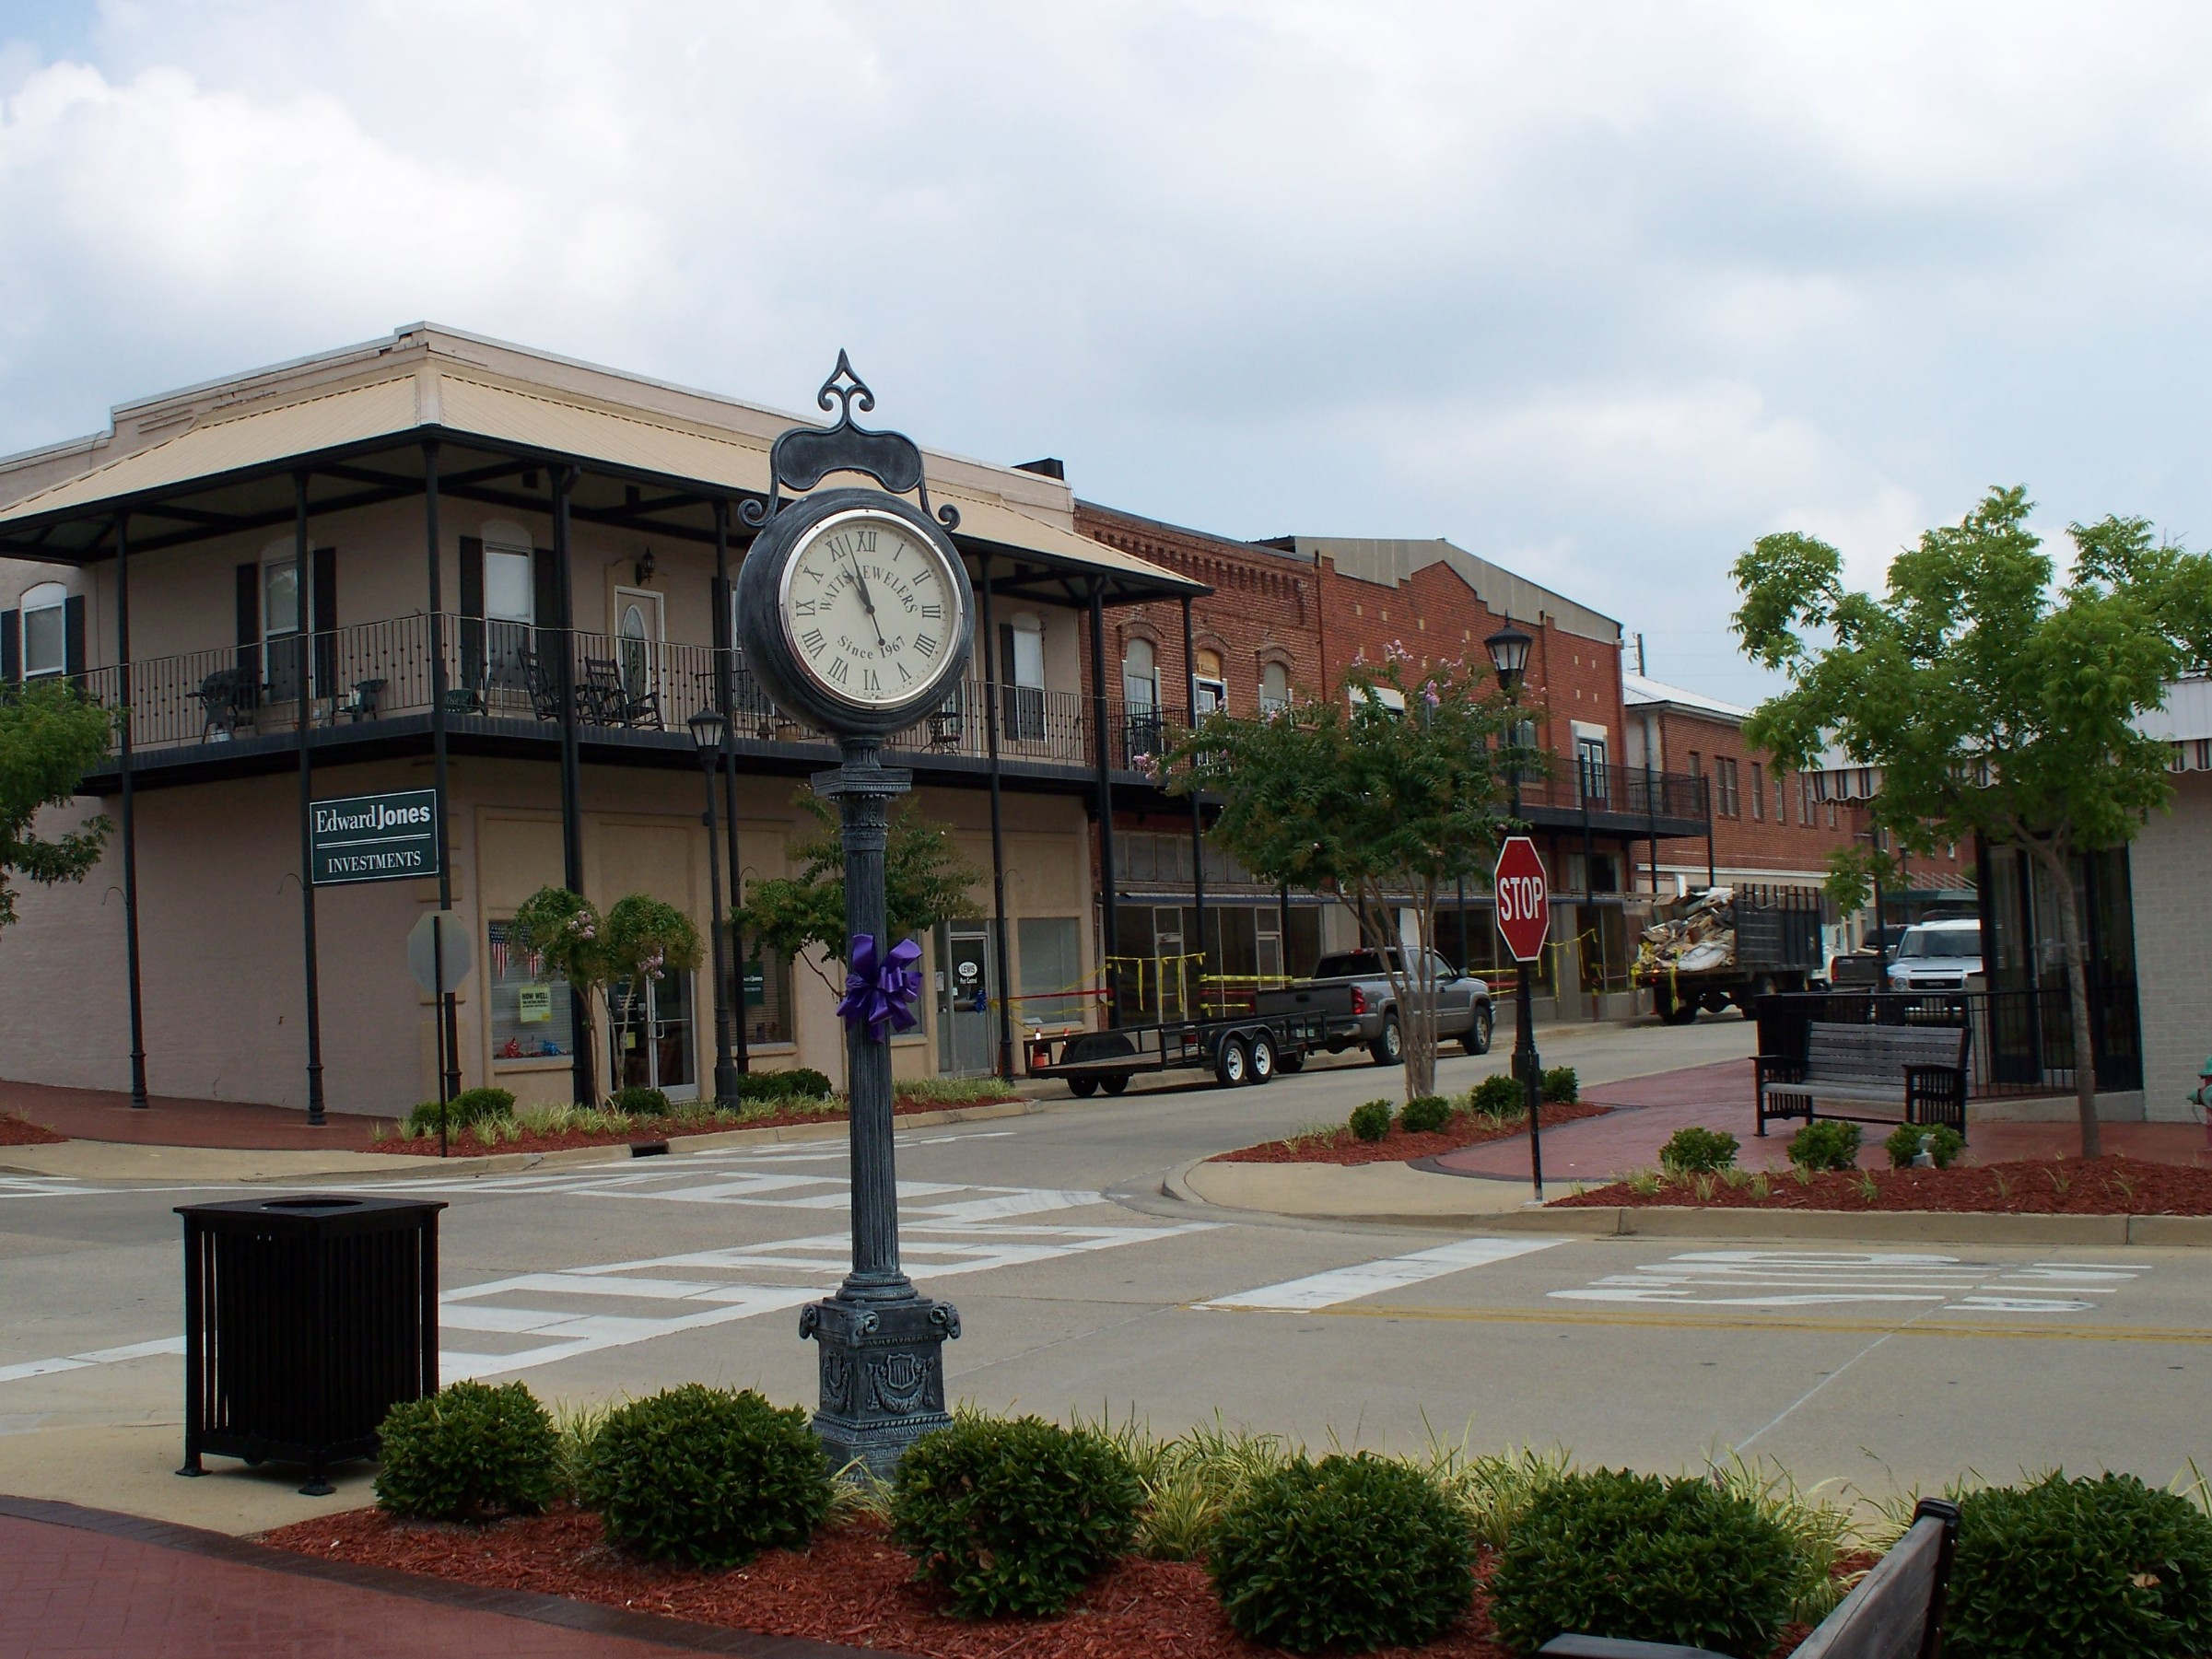 Downtown_Thomasville_Alabama_02